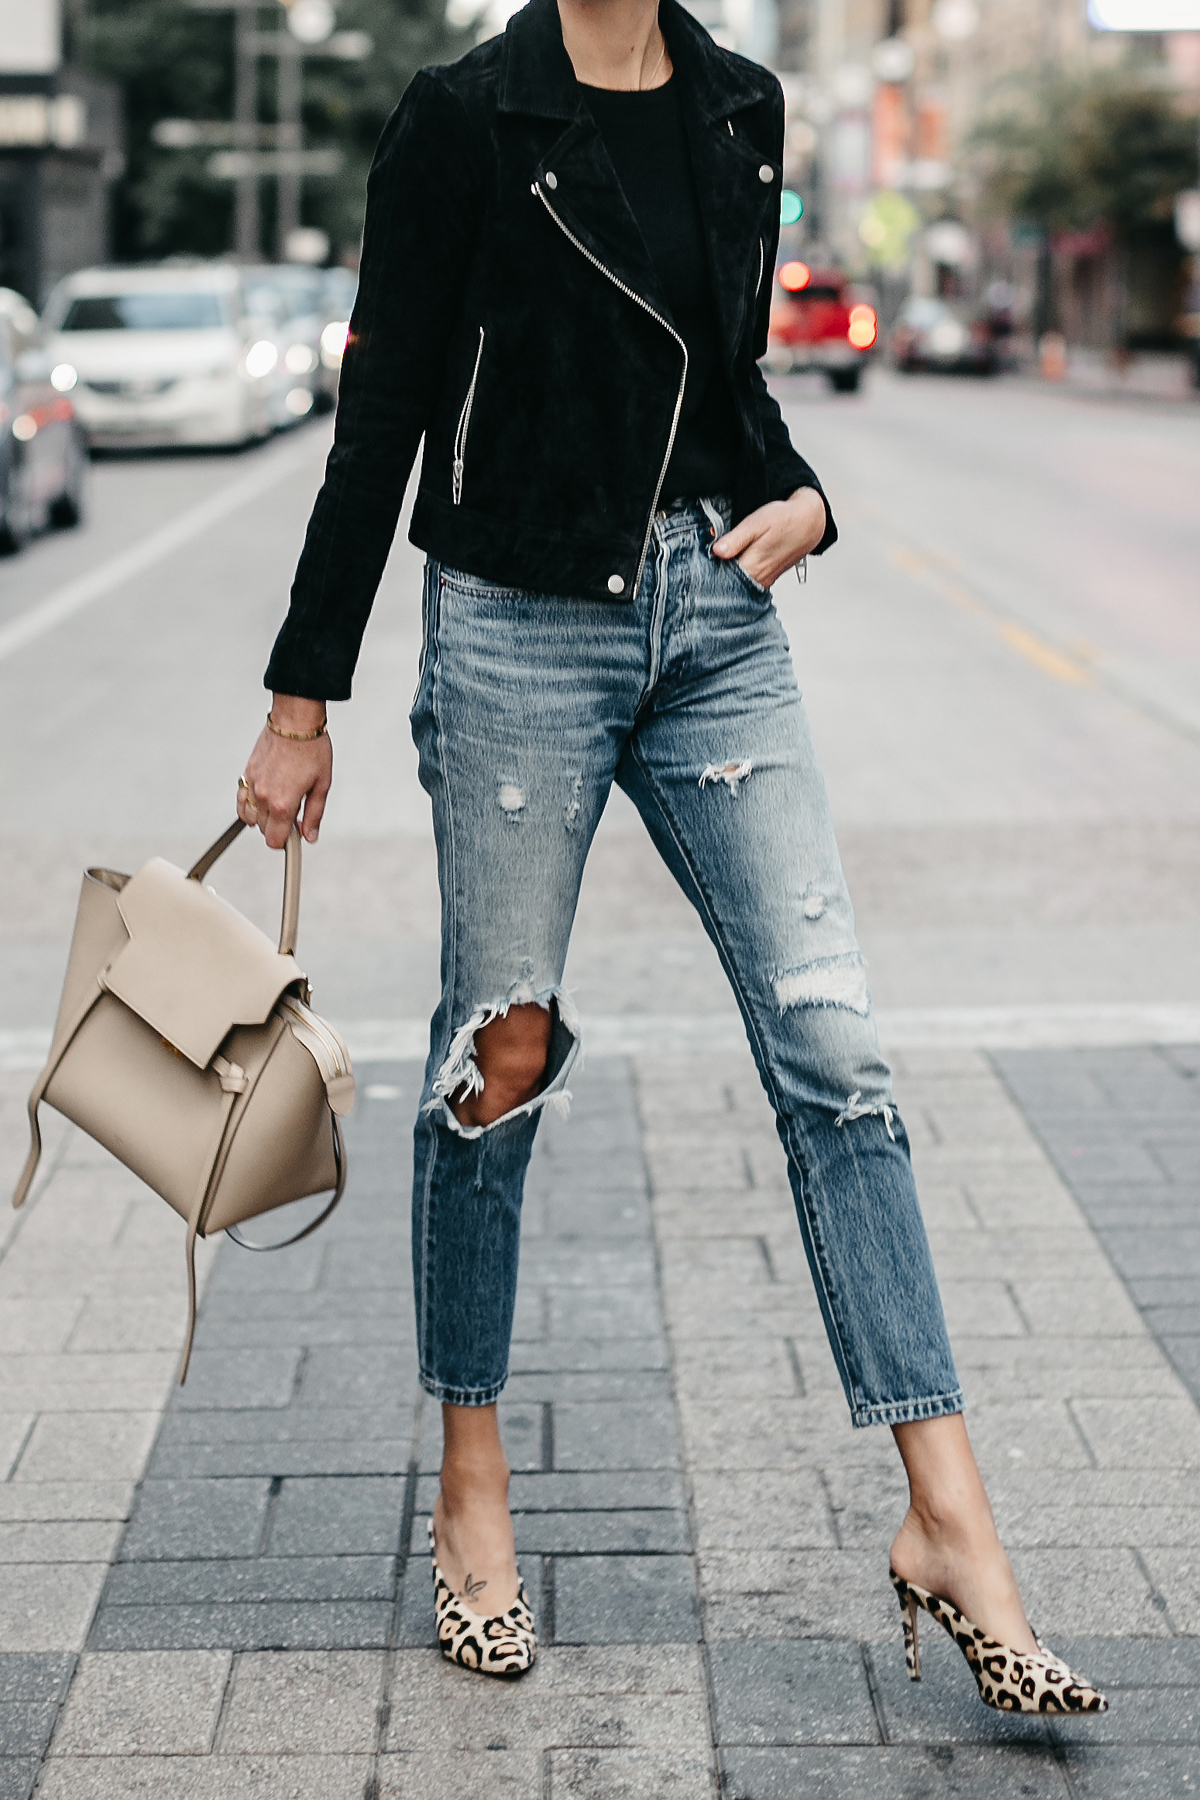 Black Suede Moto Jacket Black Sweater Denim Ripped Jeans Celine Mini Belt Bag Leopard Heels Fall-Fashion Must Haves Fashion Jackson Dallas Blogger Fashion Blogger Street Style